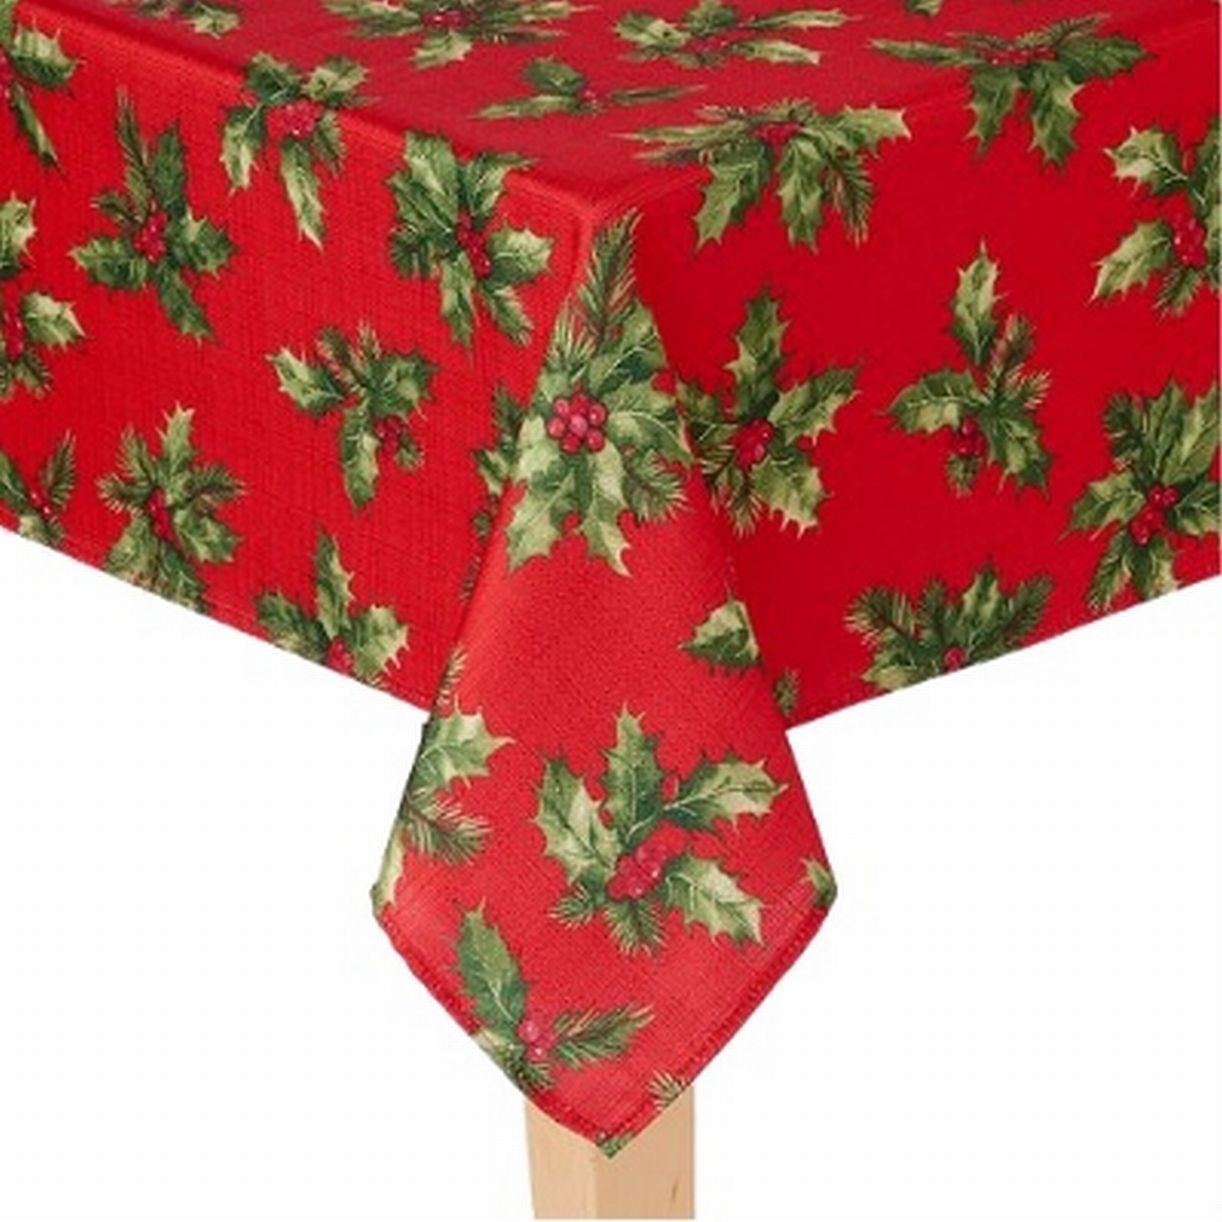 St Nicholas Square Woven Red Holly Print Tablecloth Fabric Table Cloth 90 Round